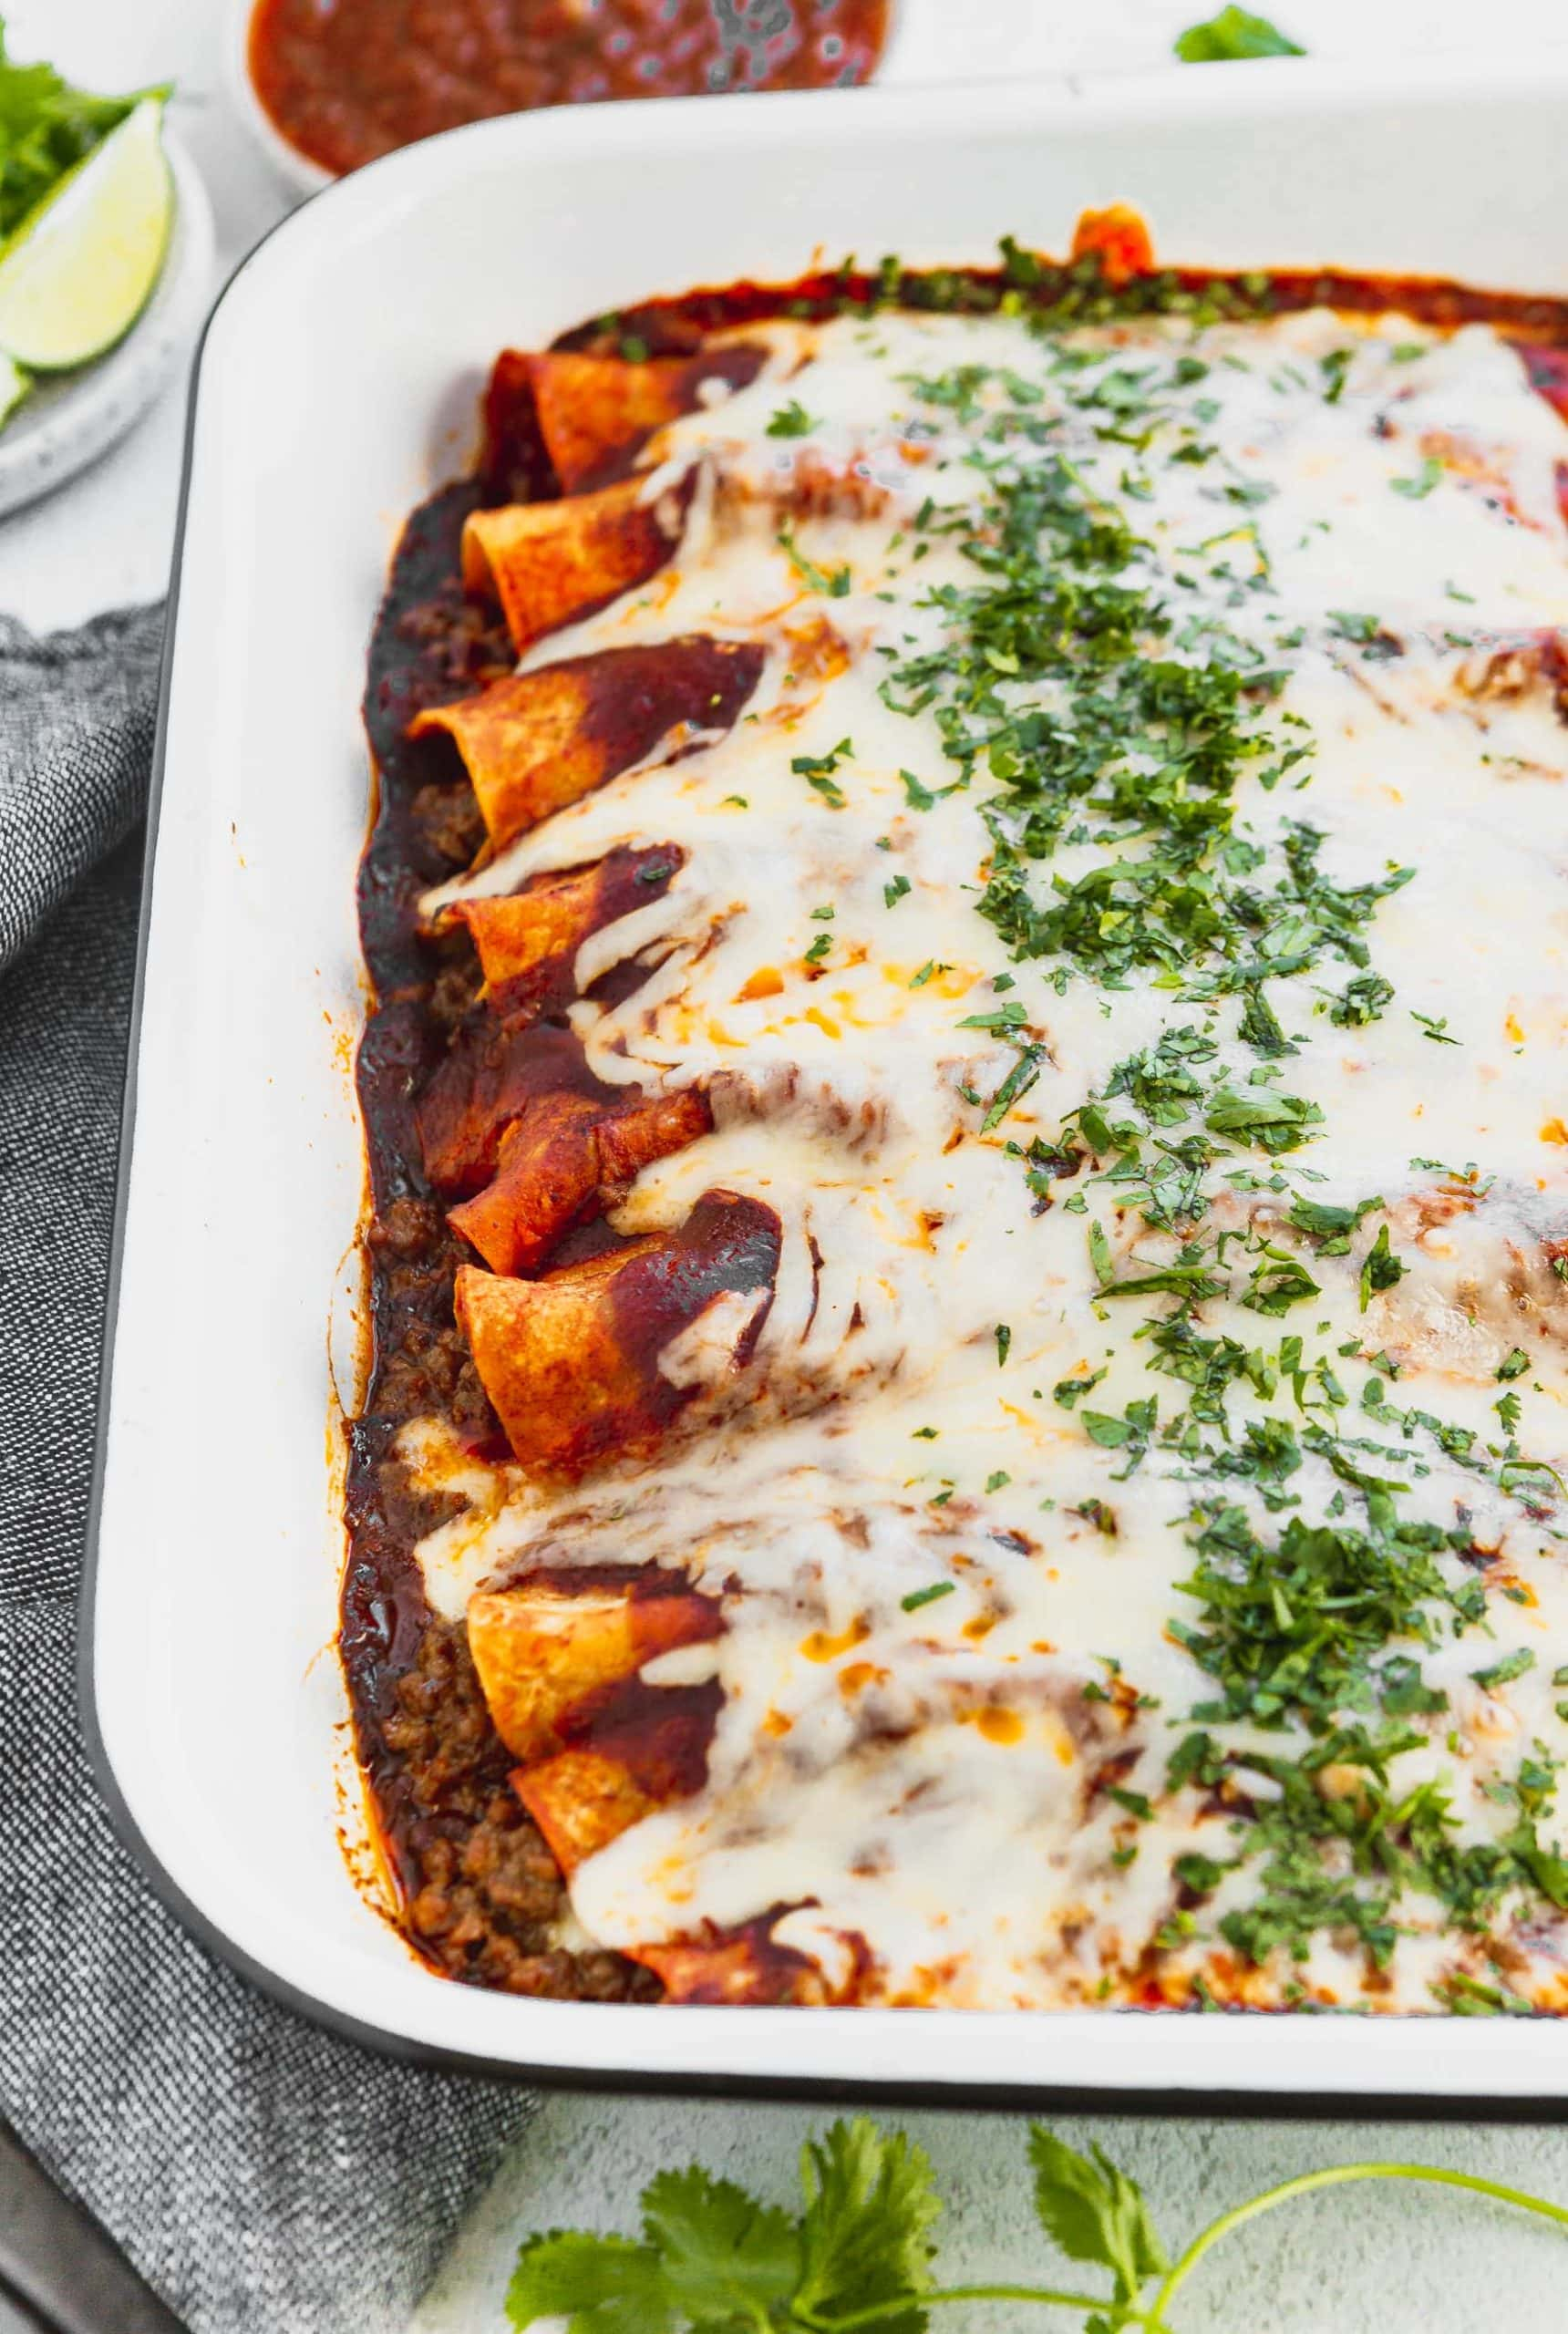 A photo of a pan of beef enchiladas covered in melted cheese and finely chopped cilantro.